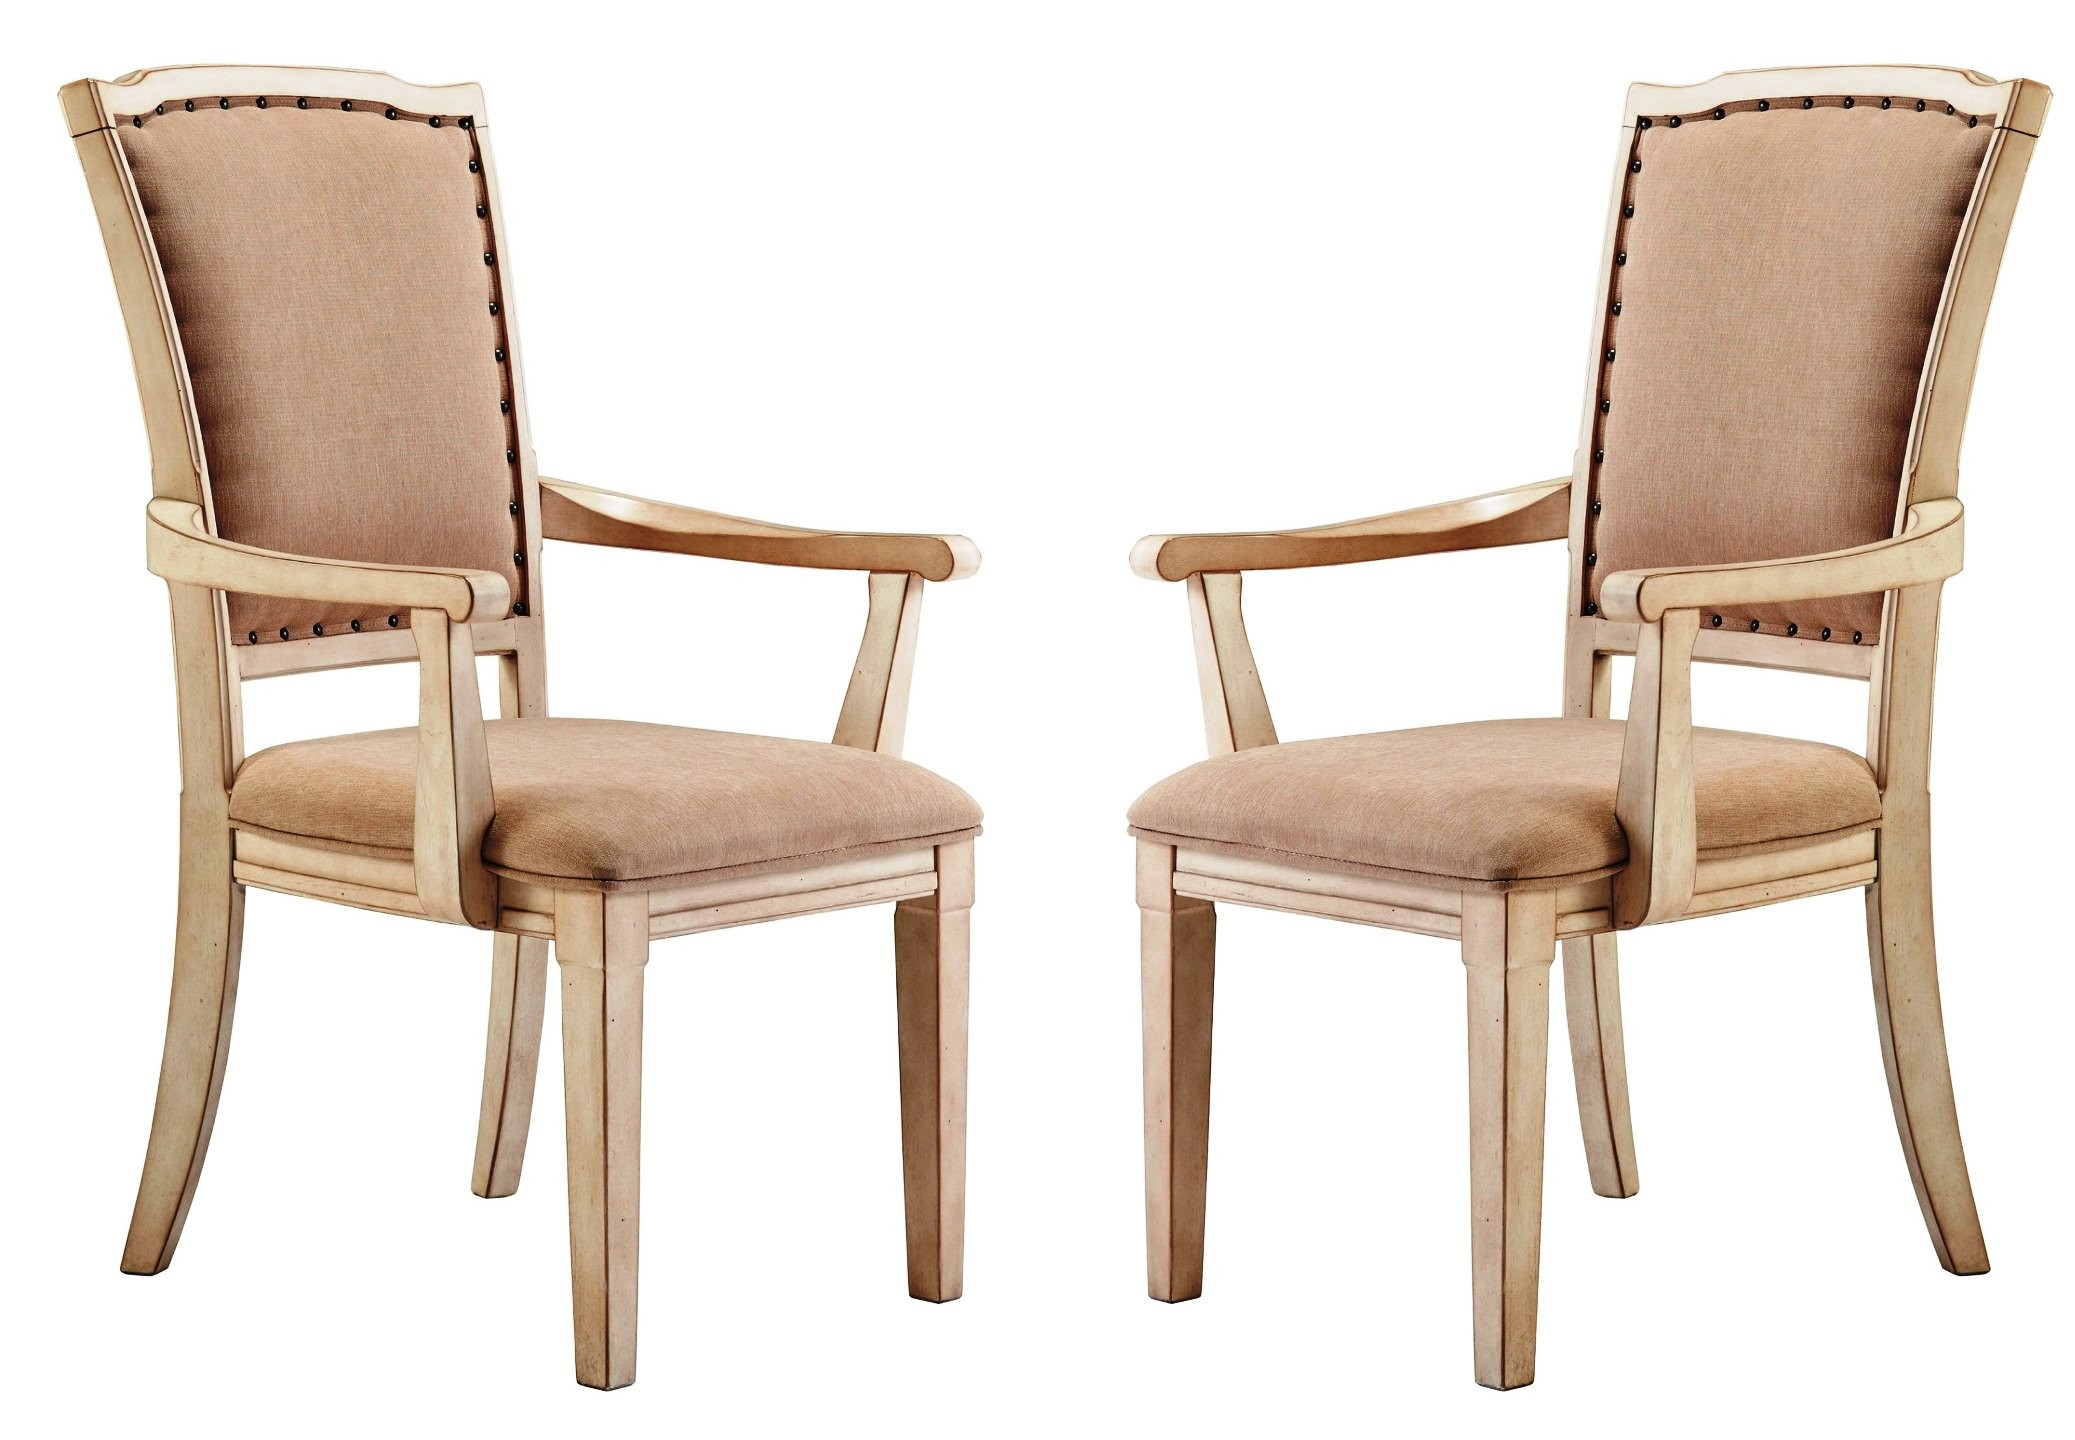 Demarlos Dining Upholstered Arm Chair Set of 2 D69301A